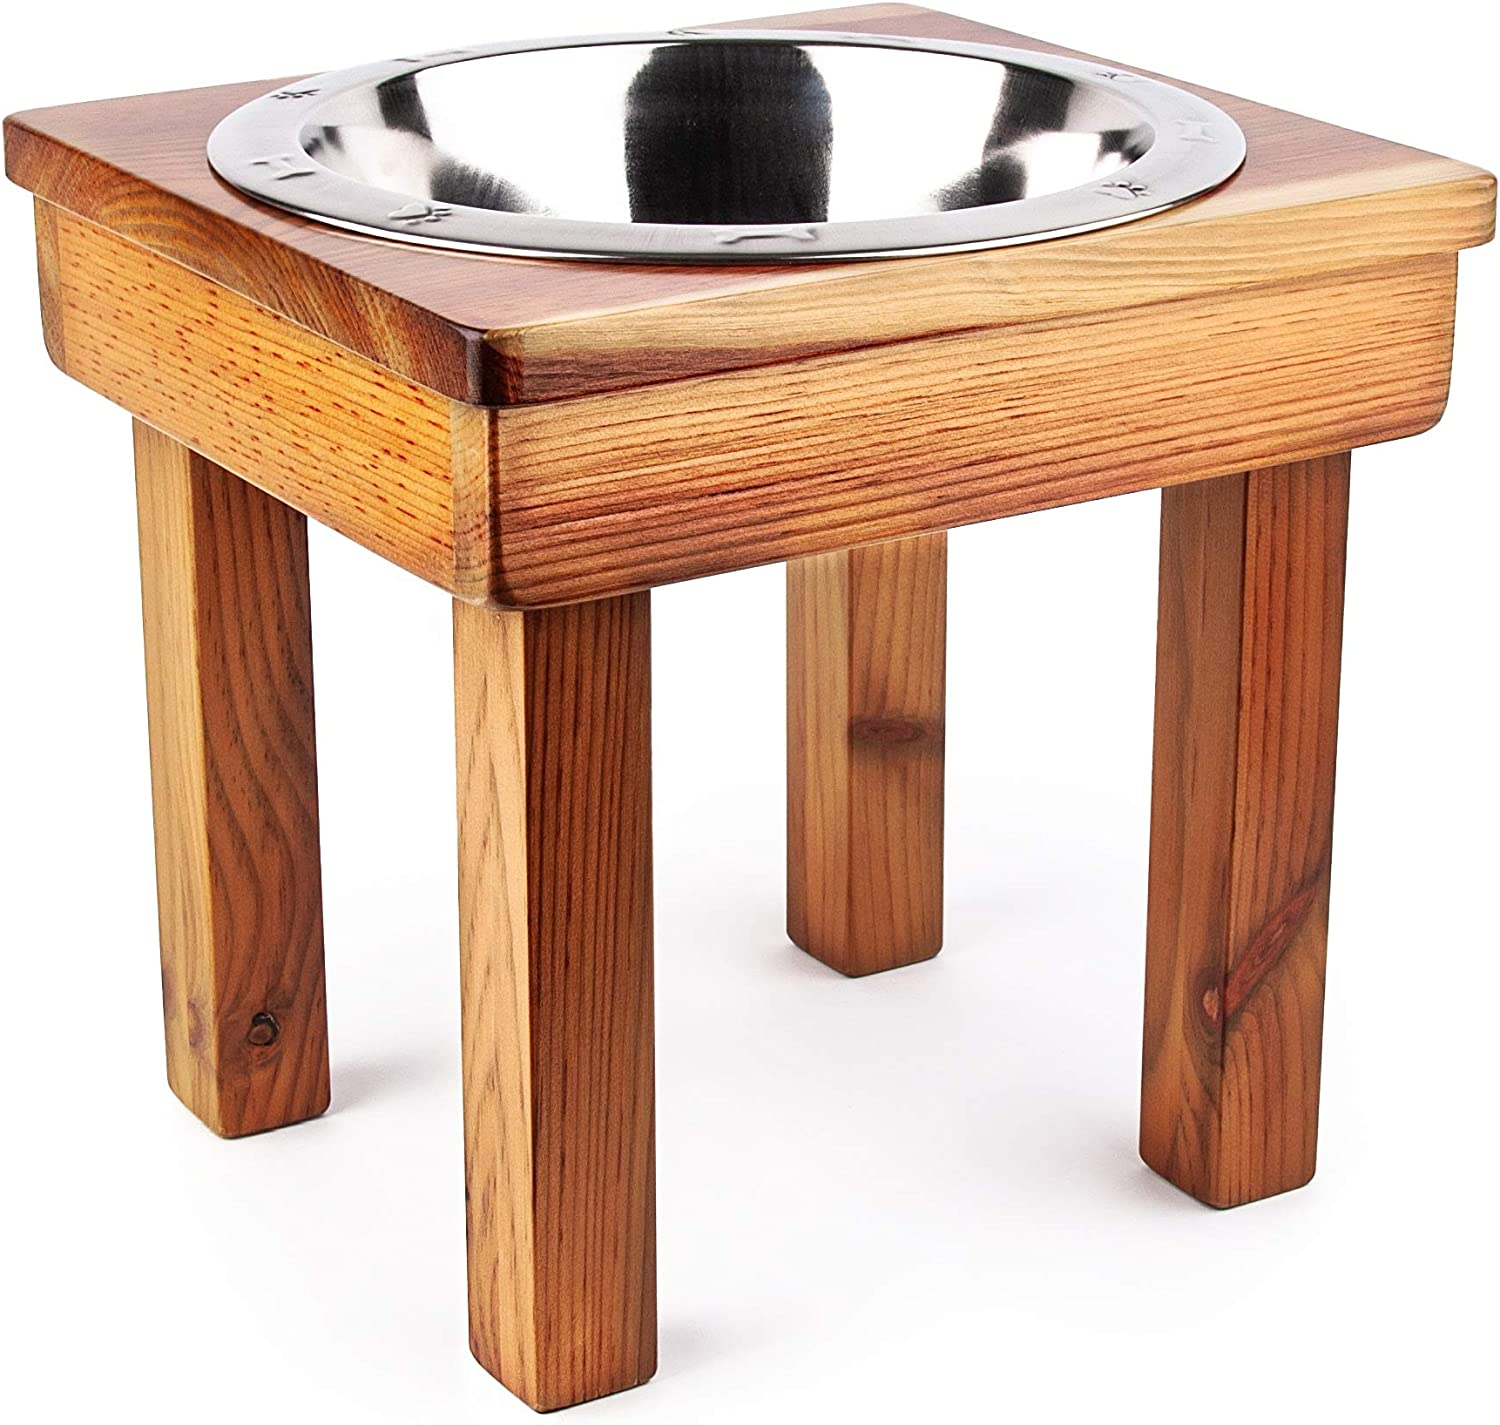 OFTO Raised Single Bowl for Dogs Cats, one Stainless-Steel Bowl, 12